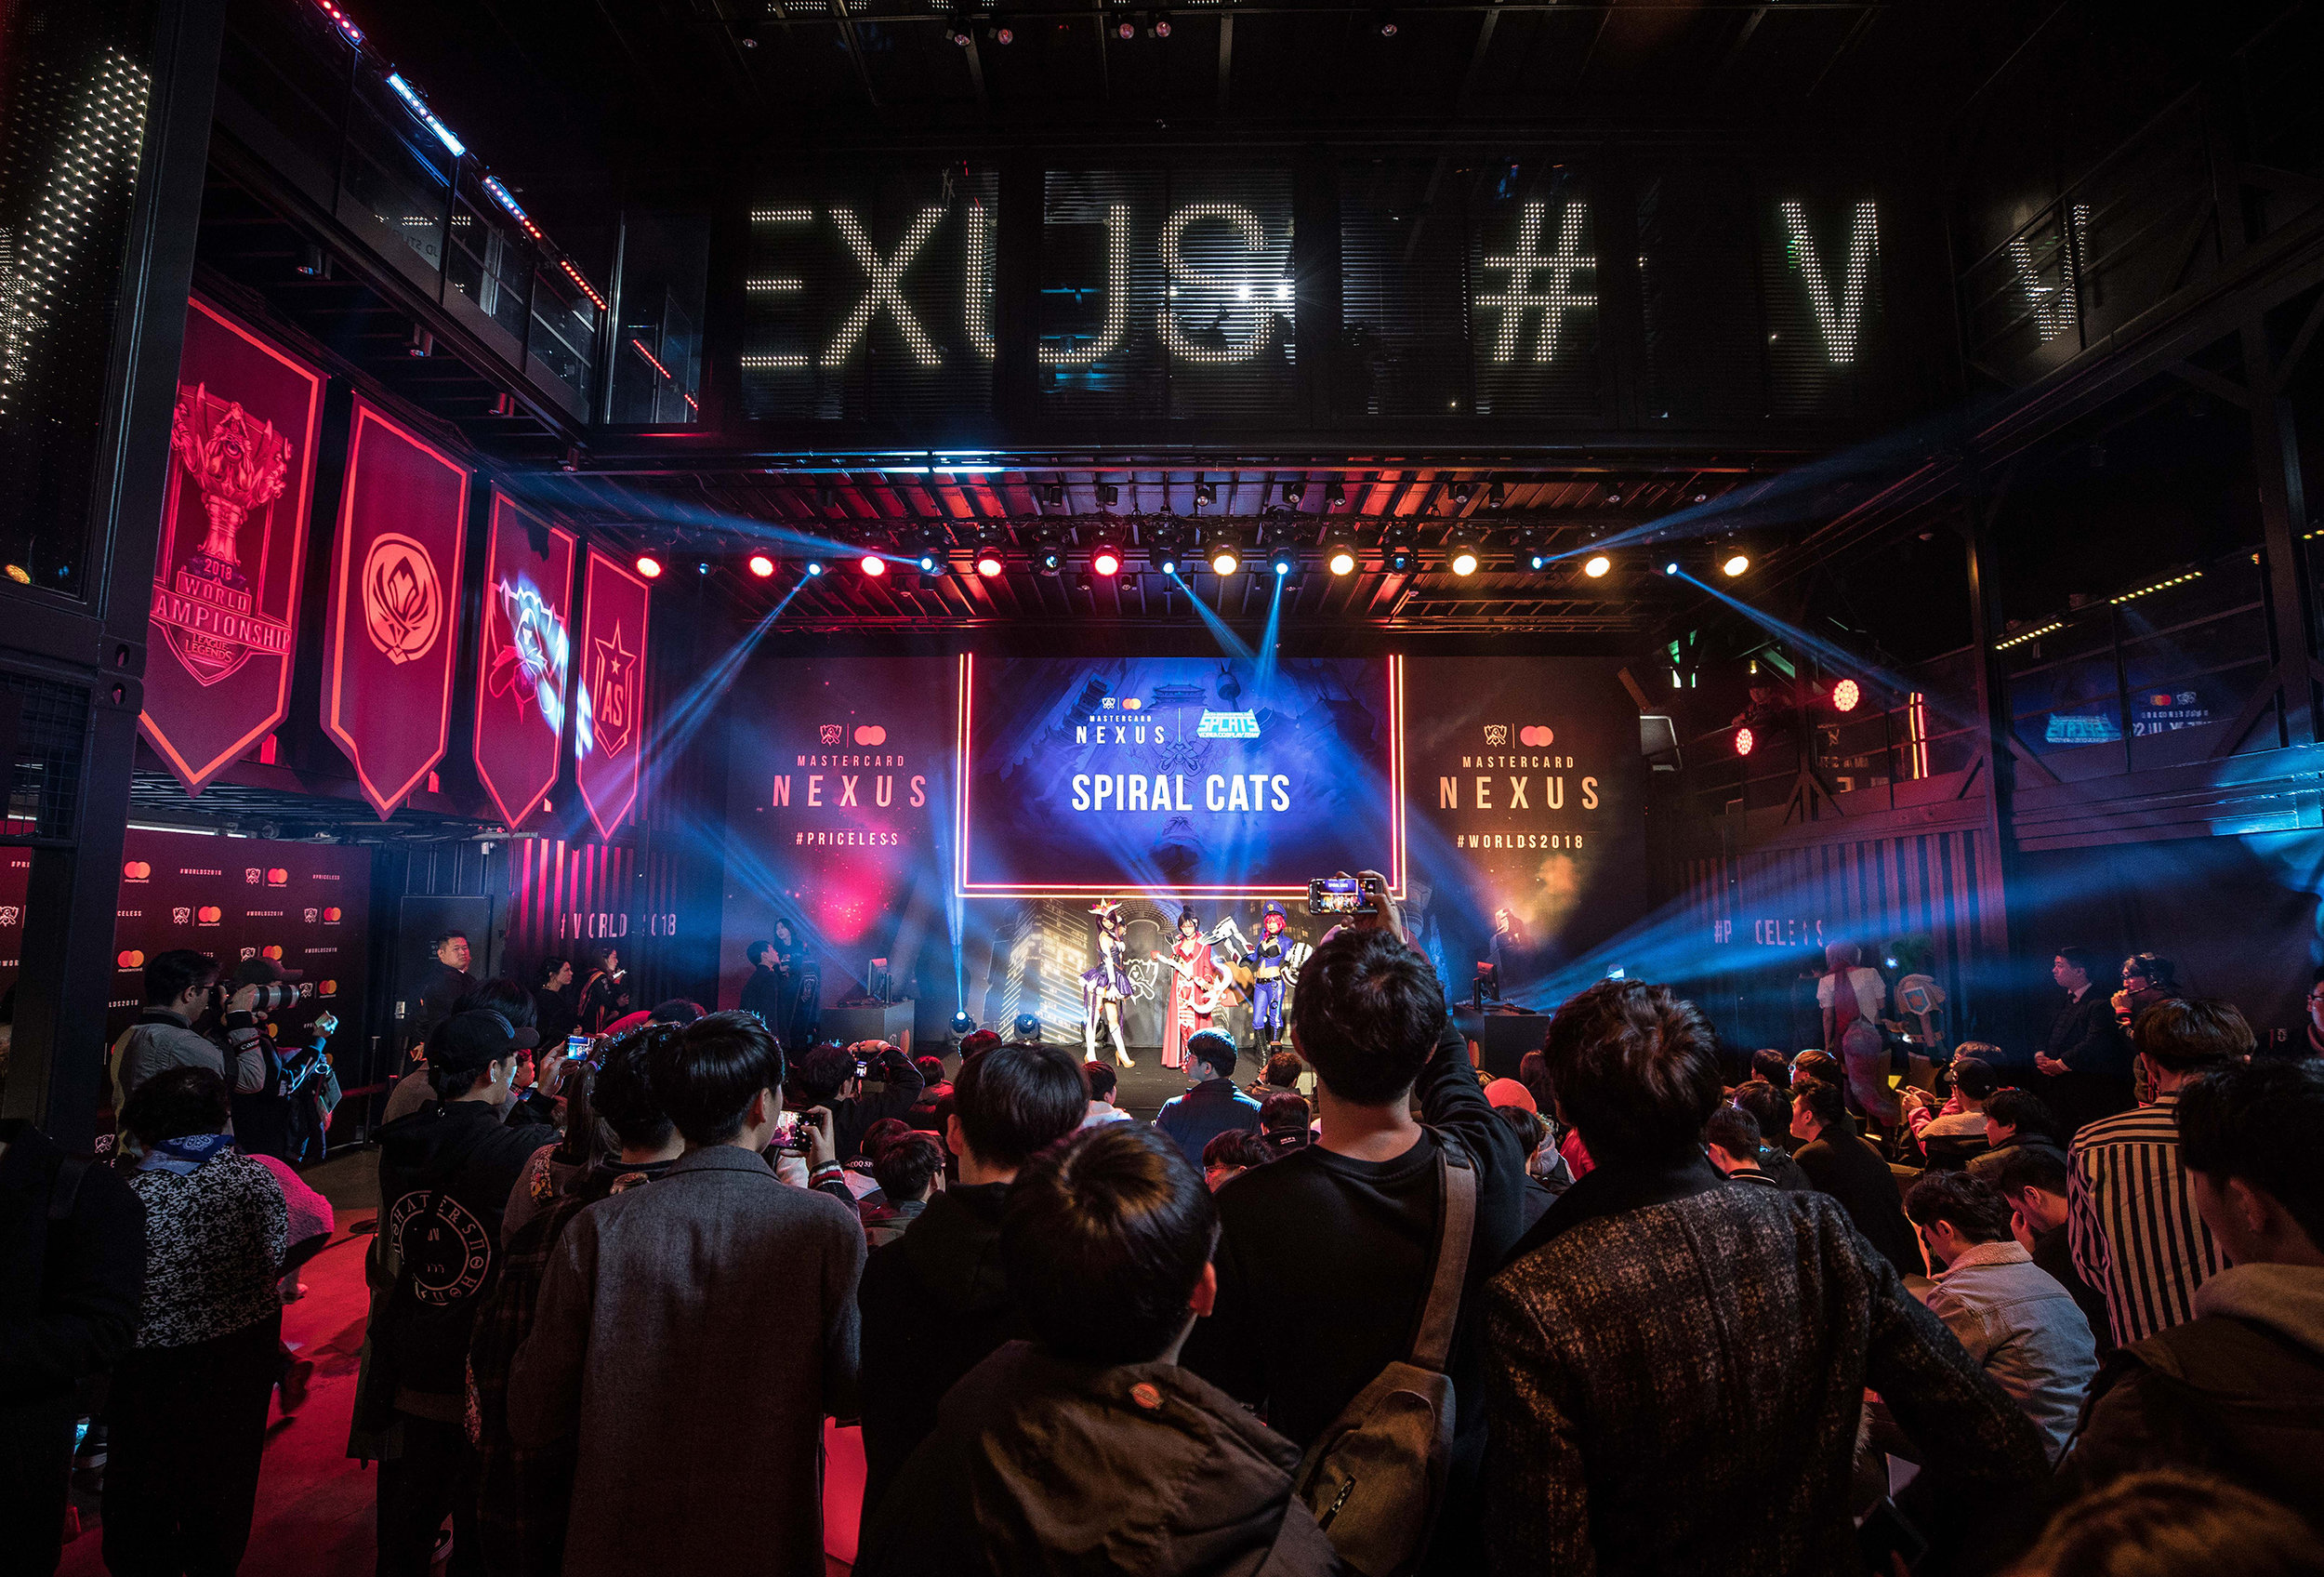 League of Legends fans enjoying the show on stage at Mastercard Nexus during the 2018 League of Legends World Championship on November 2, 2018 in Incheon, South Korea.  Photo by Hannah Smith/ESPAT Media for Mastercard